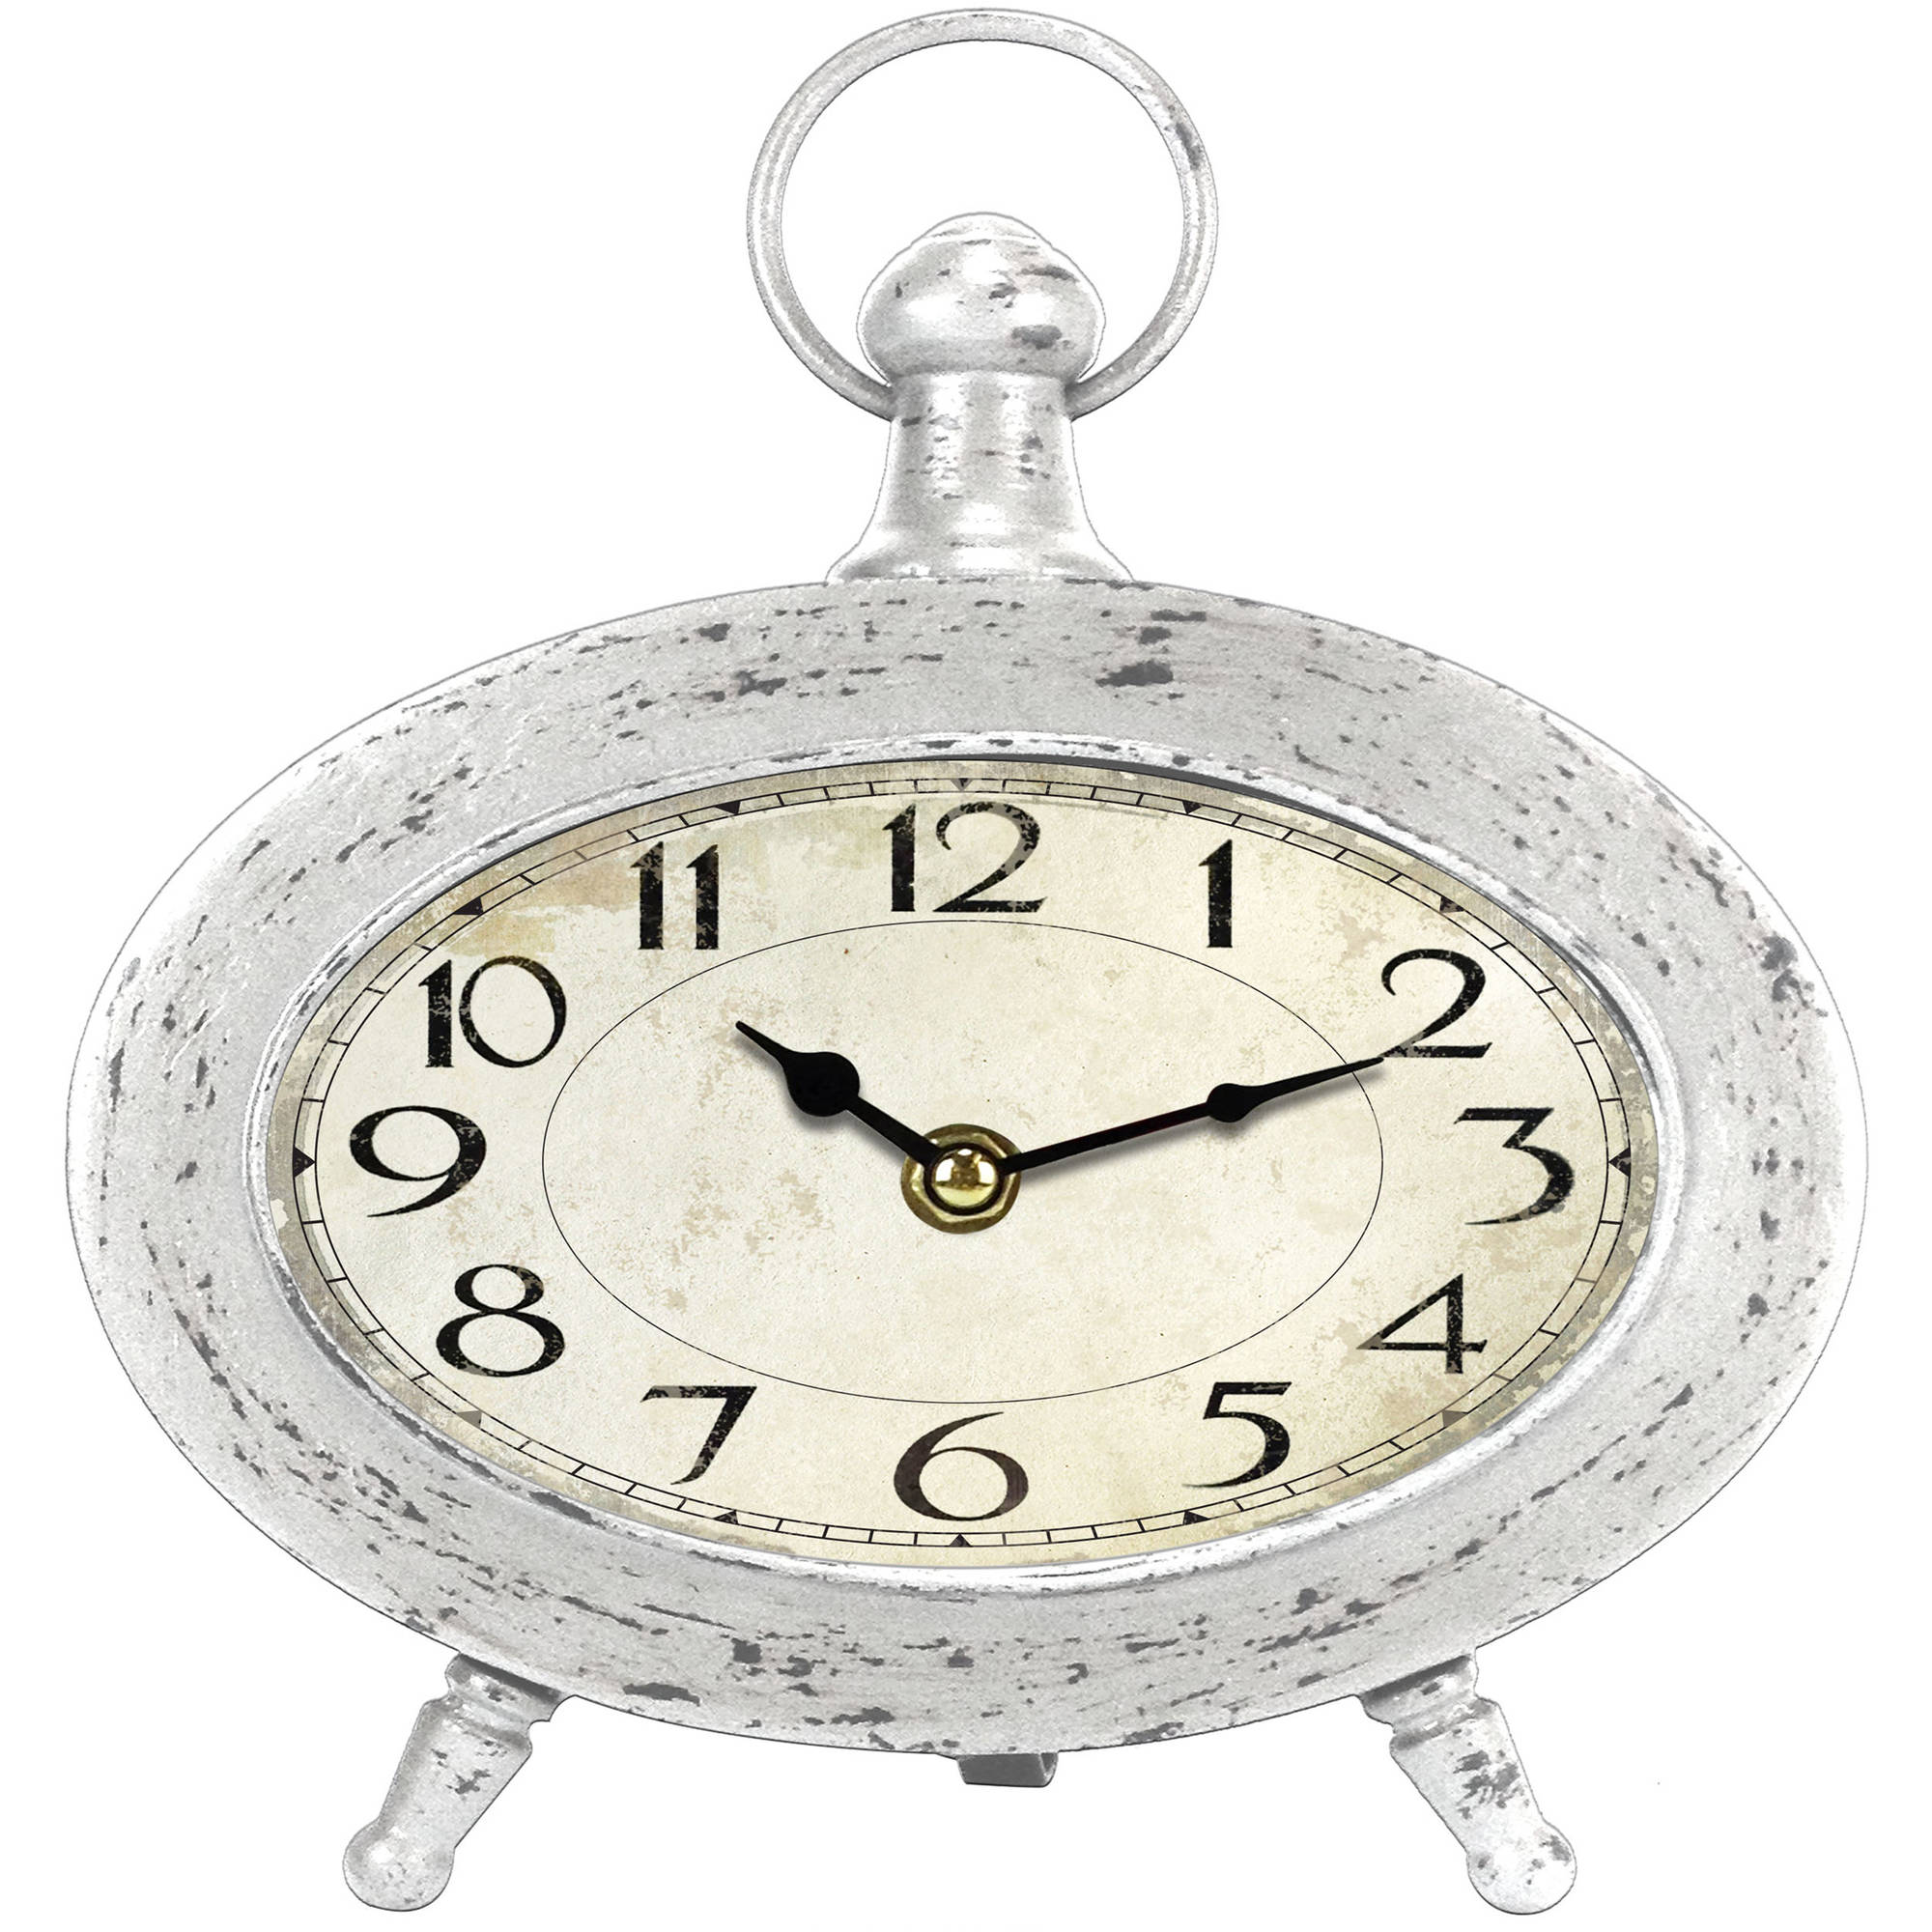 Generic Oval Quartz Analog Distressed White Metal Table Clock